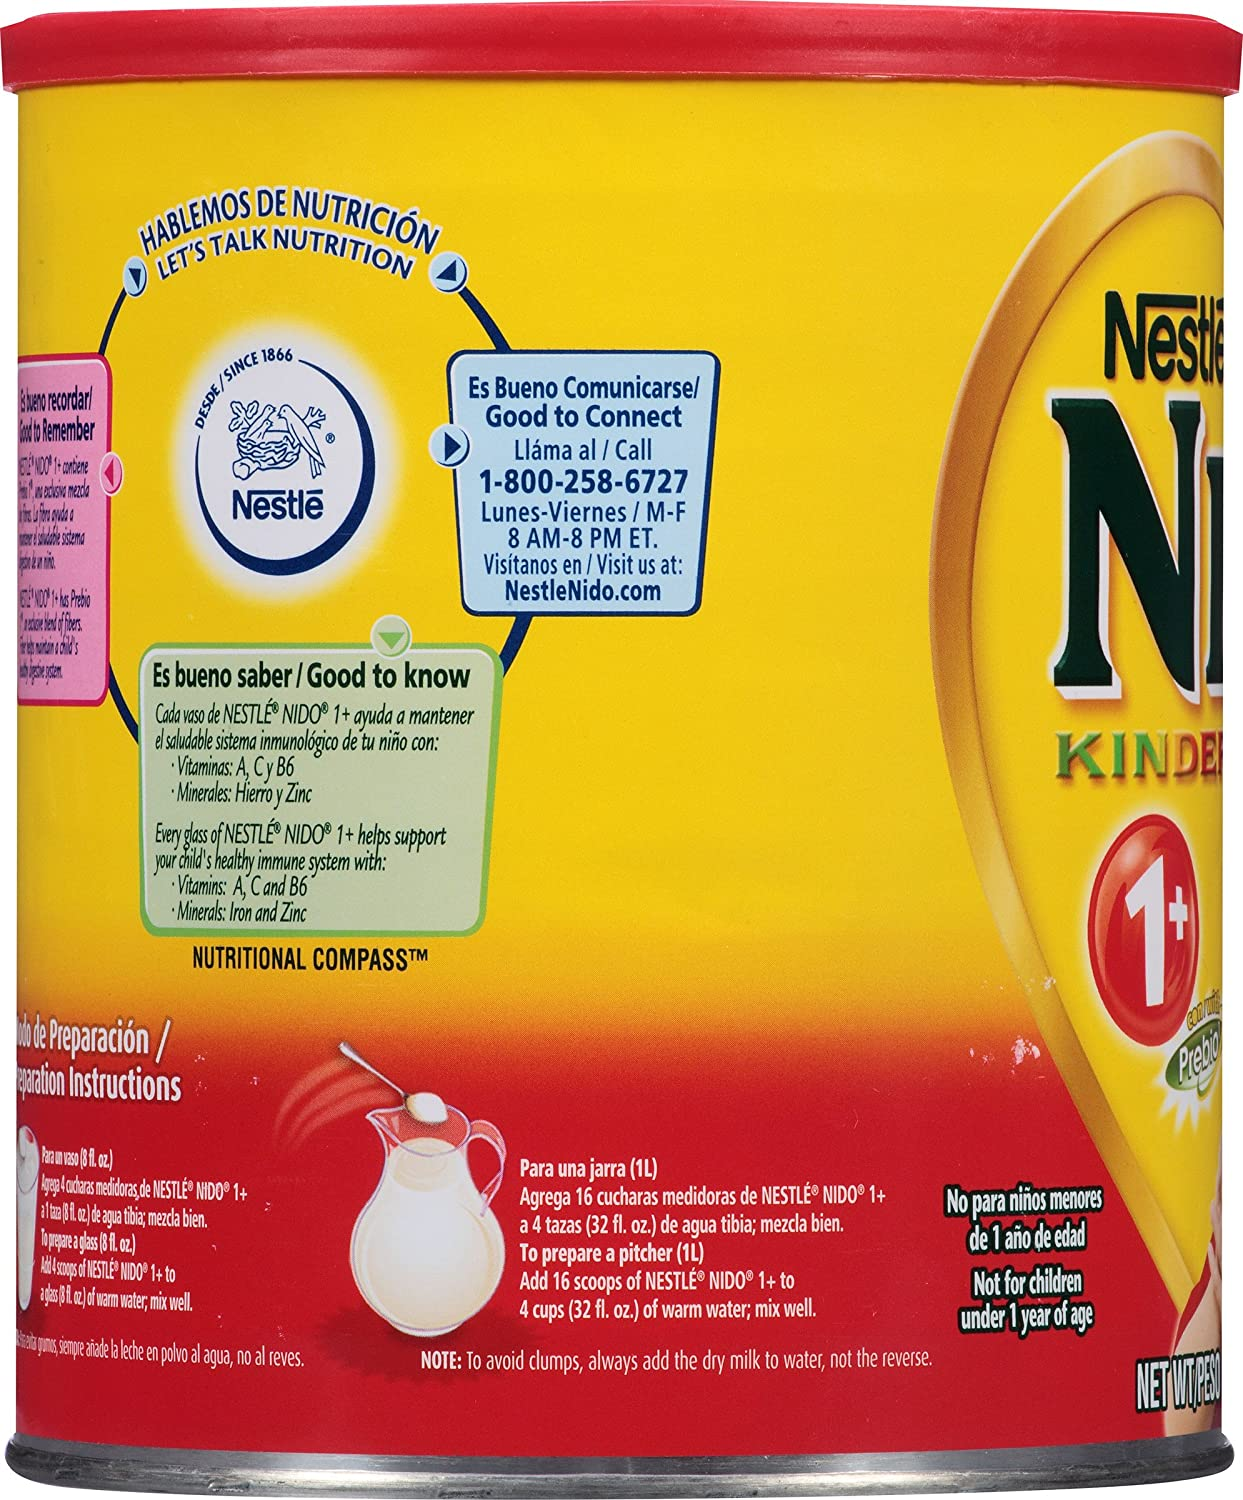 Amazon.com: NESTLE NIDO Kinder 1+ Powdered Milk Beverage 1.76 lb. Canister: Prime Pantry